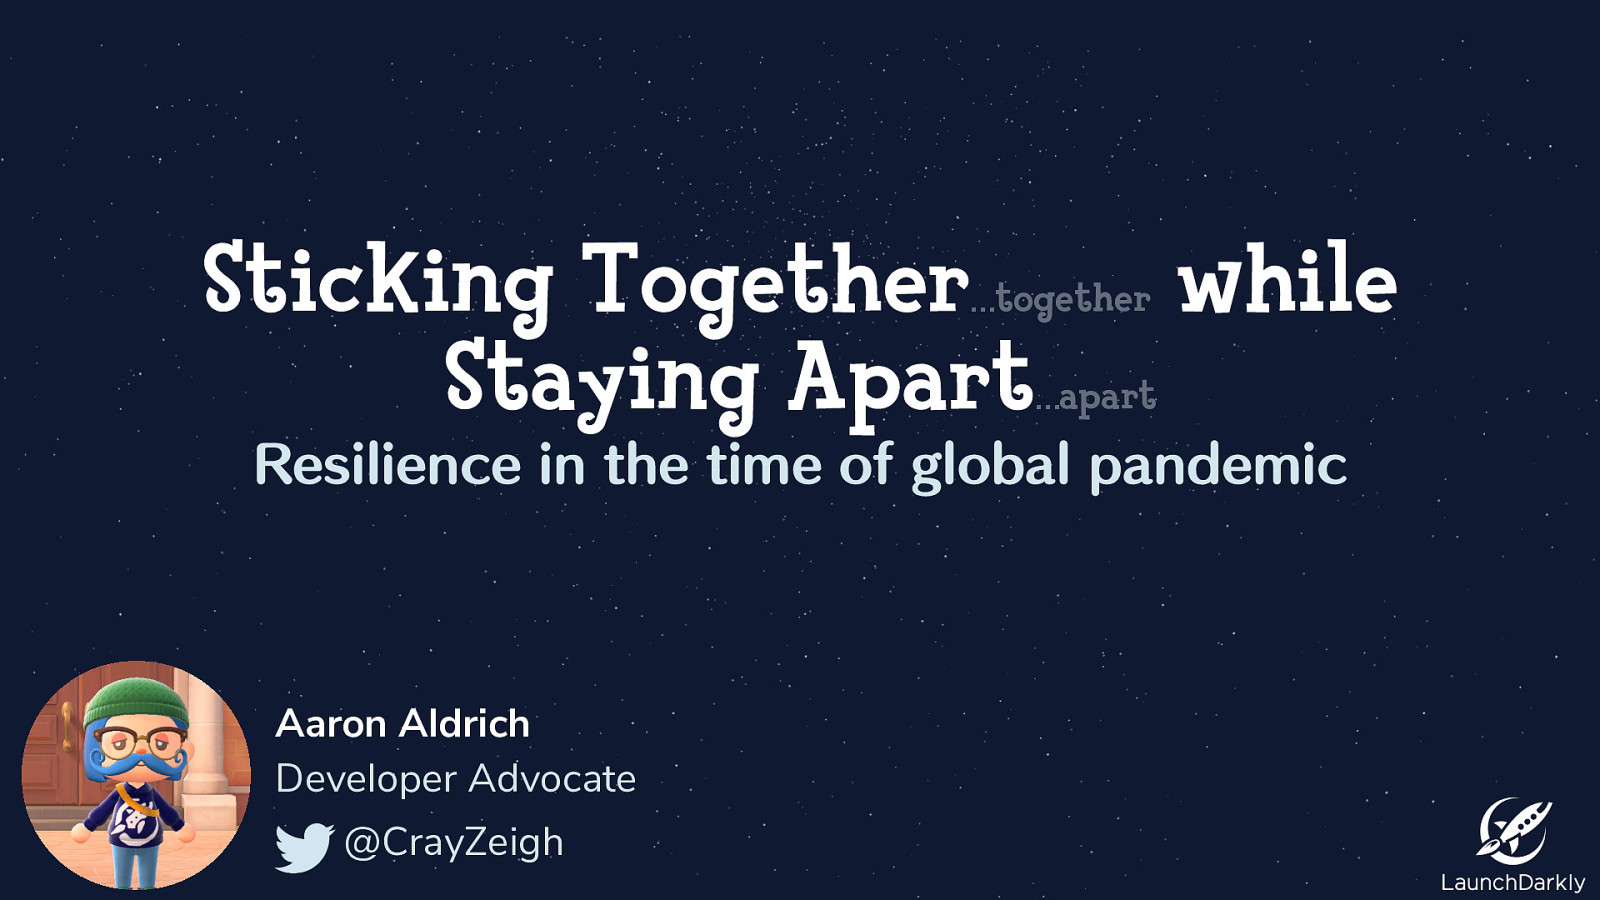 Sticking Together while Staying Apart: Resilience in the time of global pandemic